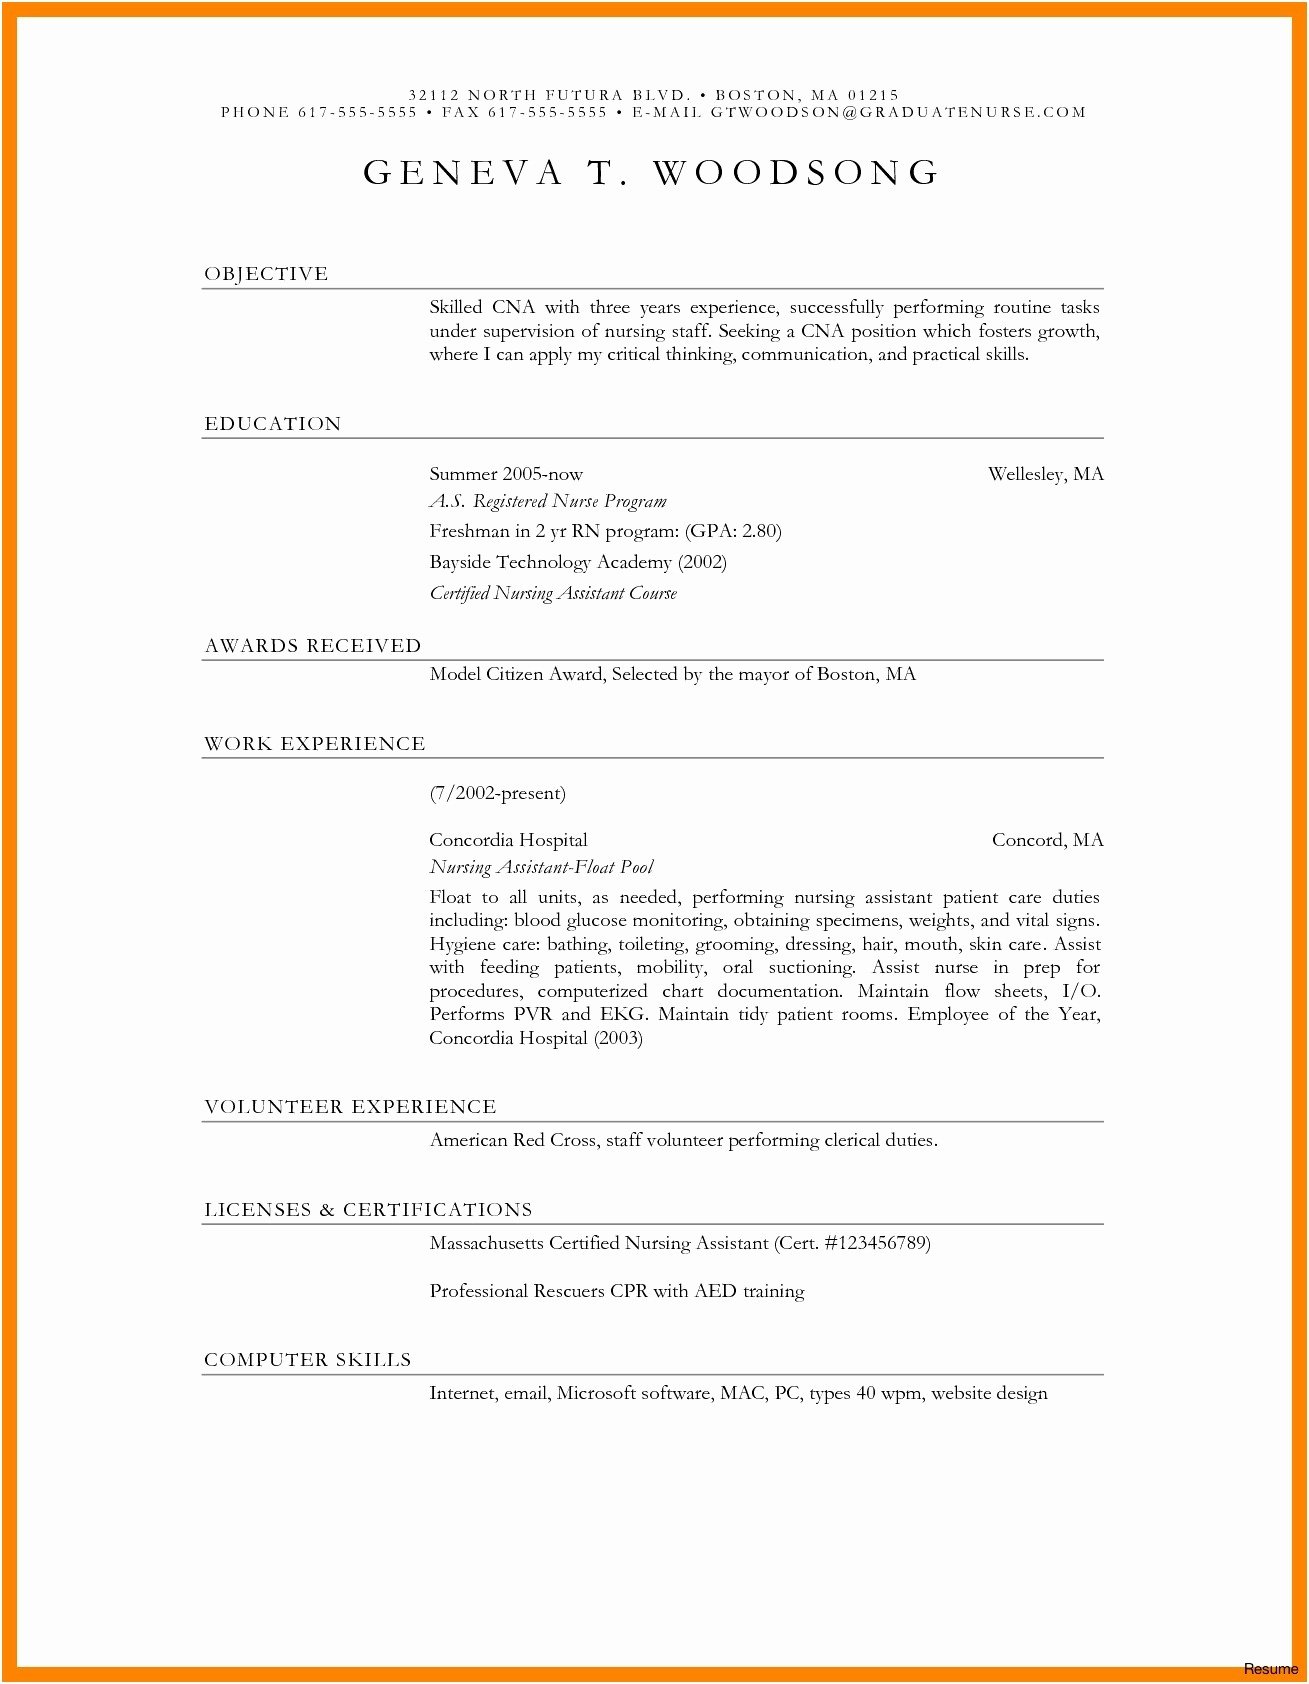 Actor Resume Template Free - Gymnastics Coach Resume Resume formats Free Resume formats Free